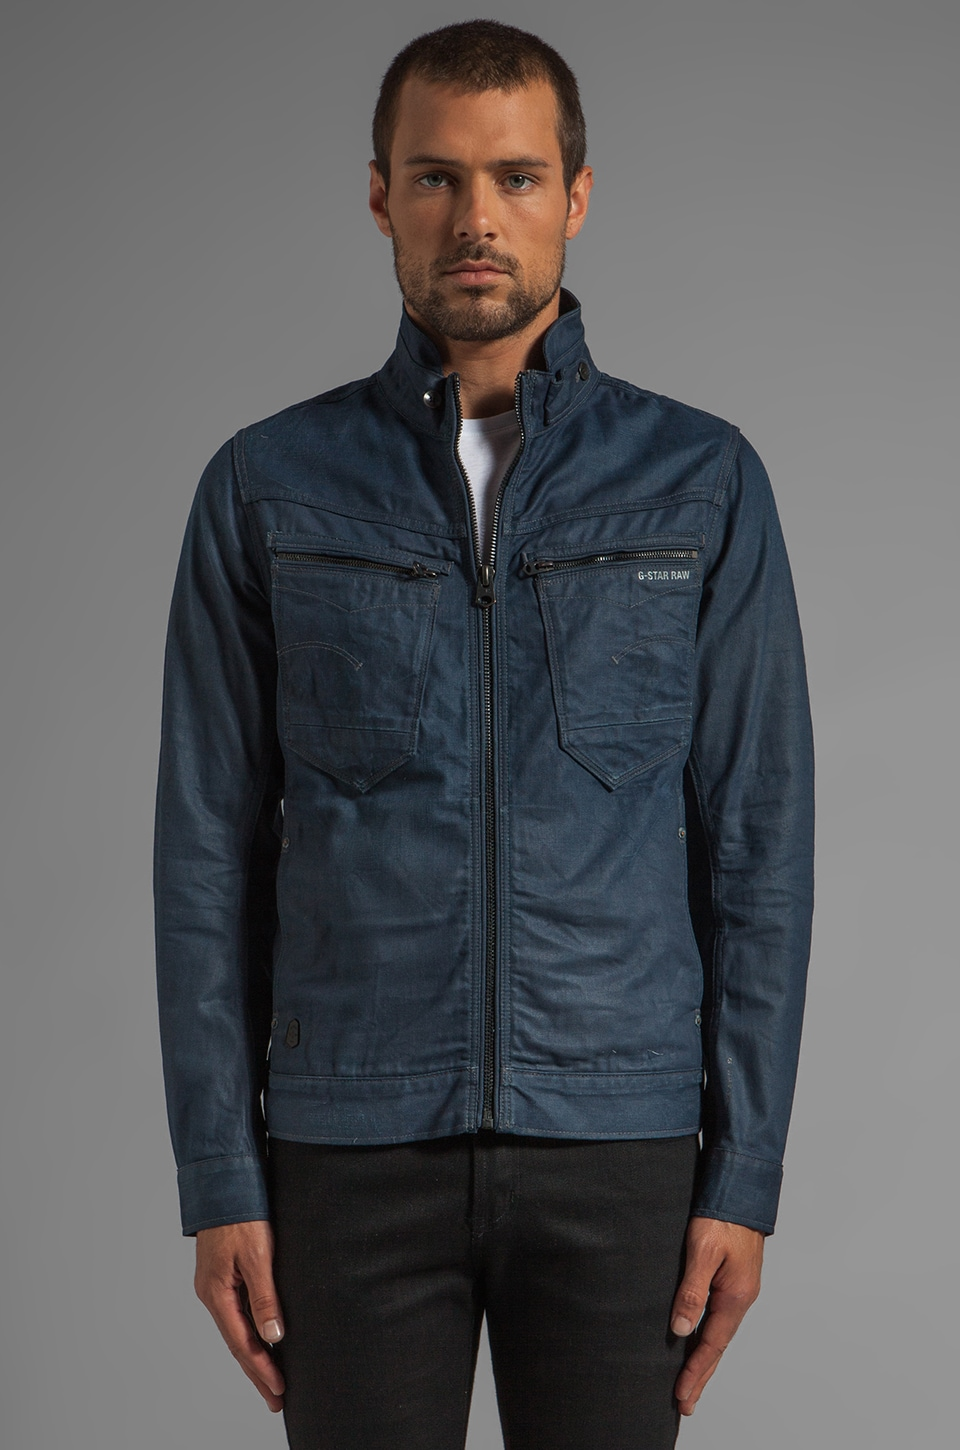 G-Star New Riley Slim Jacket in Format Blue